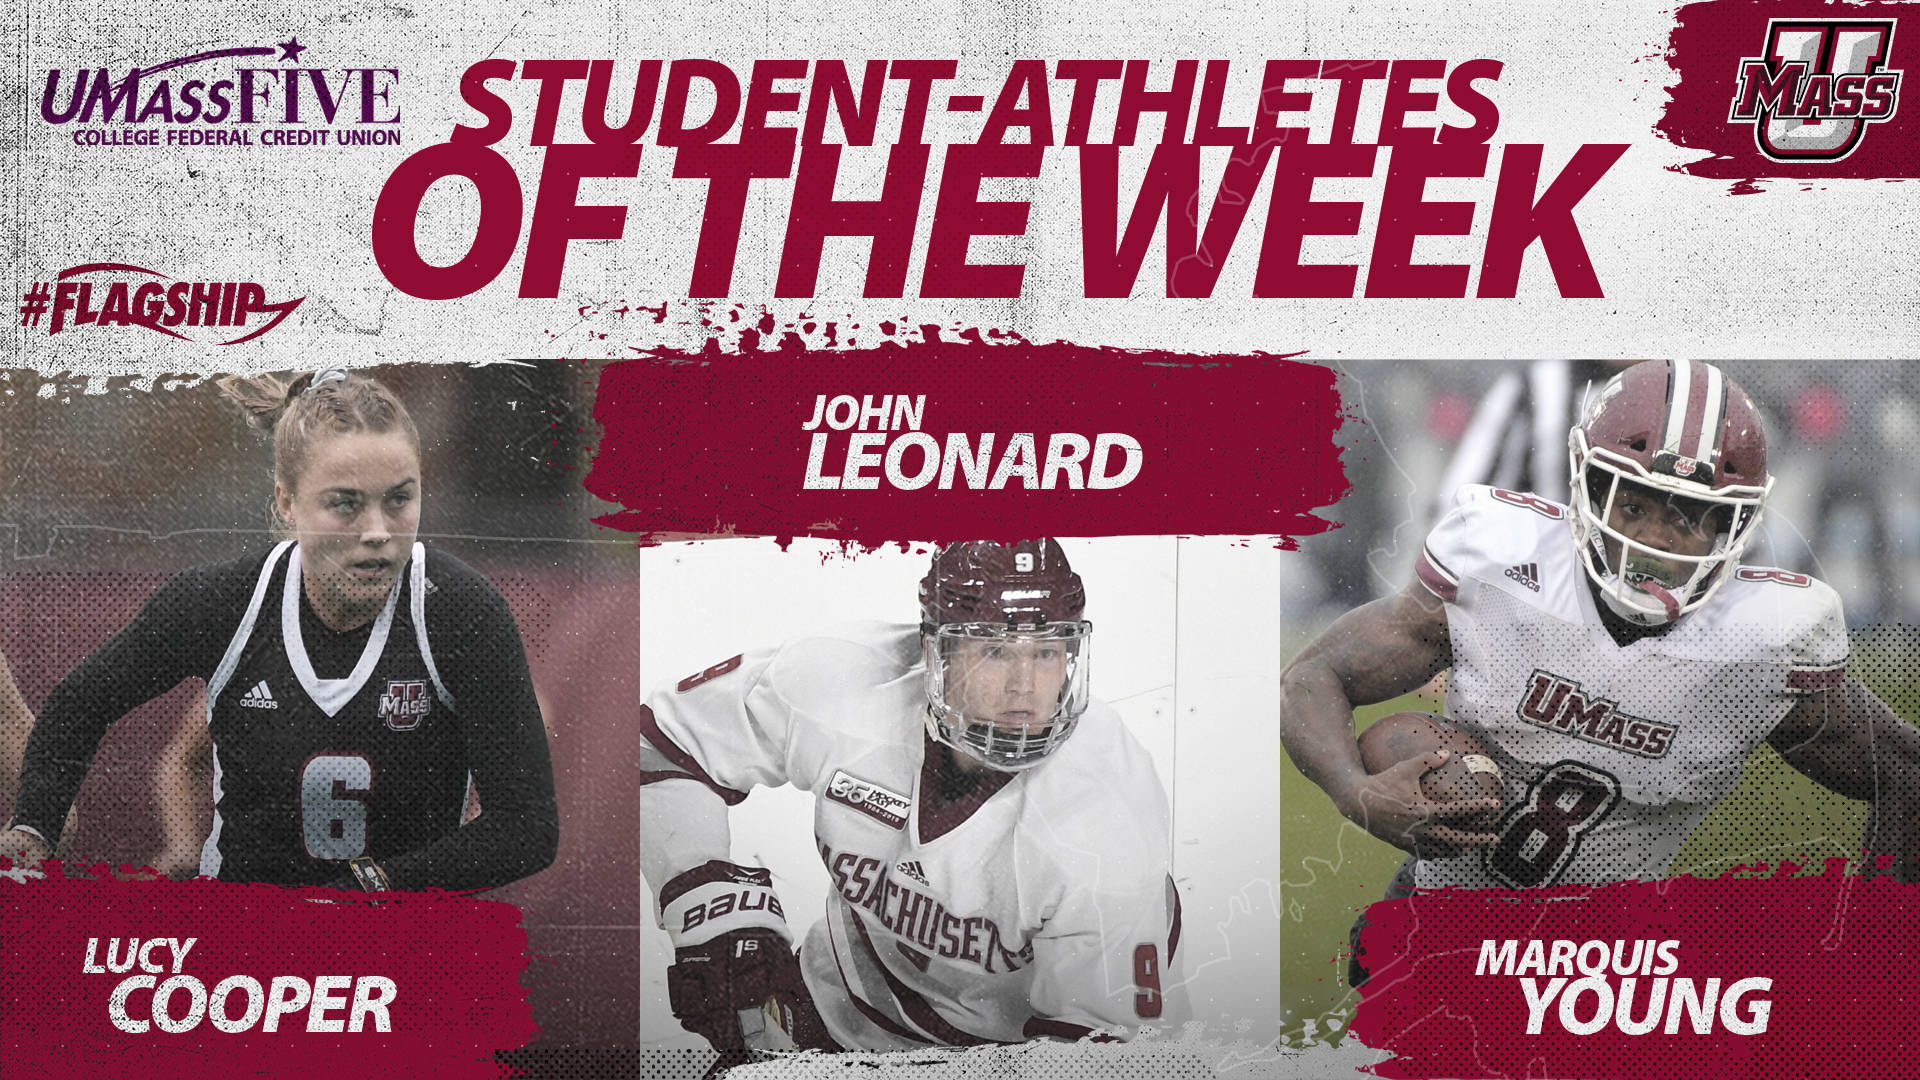 UMass Athlete of the Week - 10/31/18